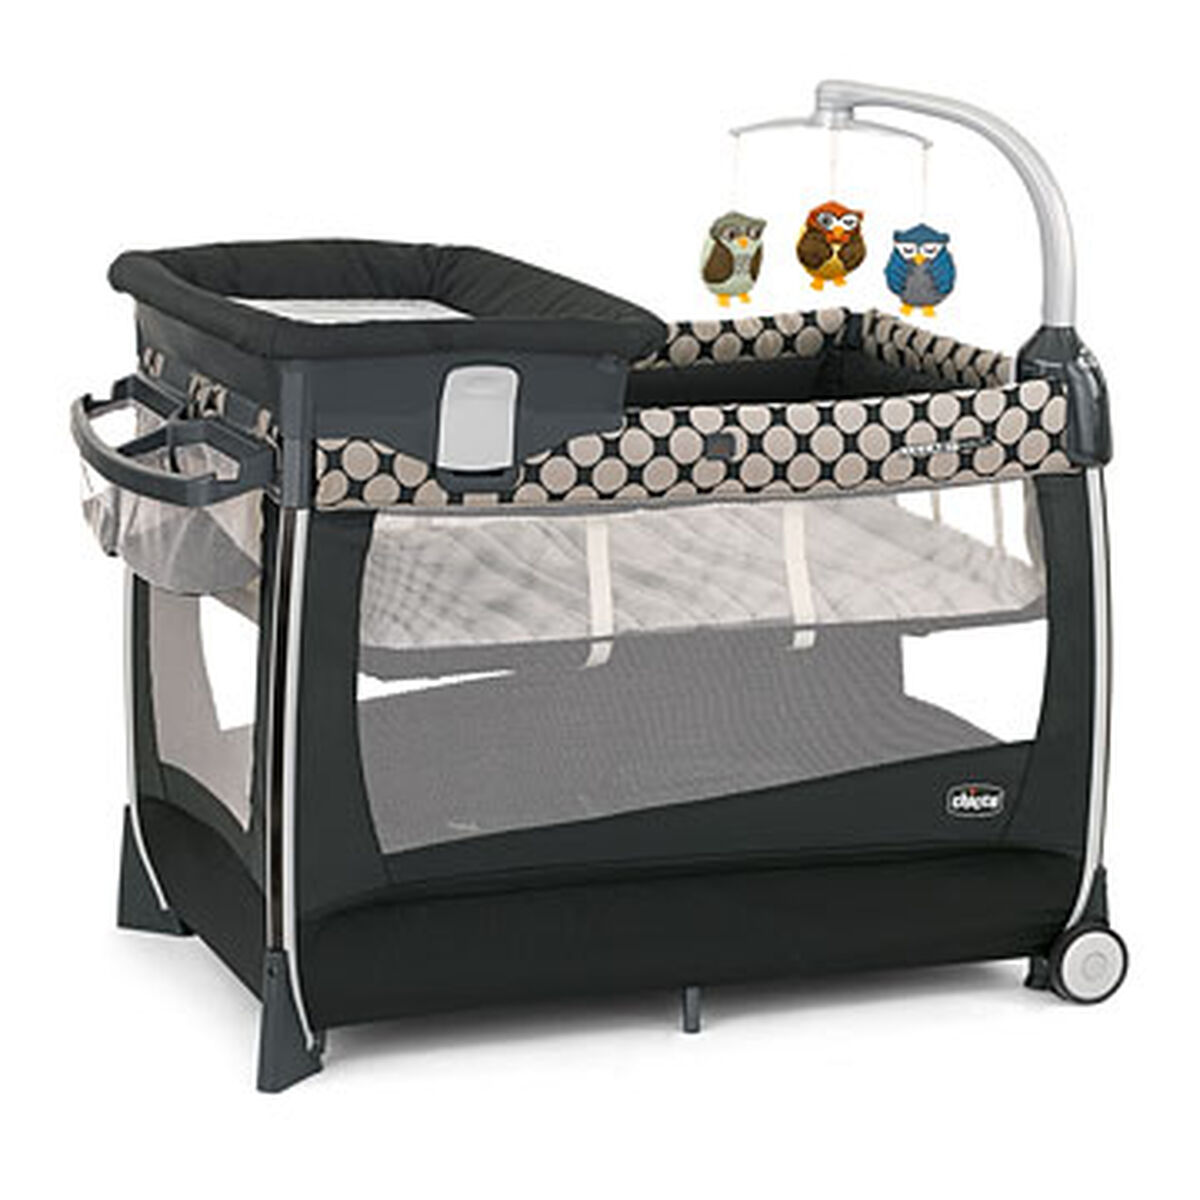 Lullaby Magic Playard - SolareLullaby Magic Playard - Solare